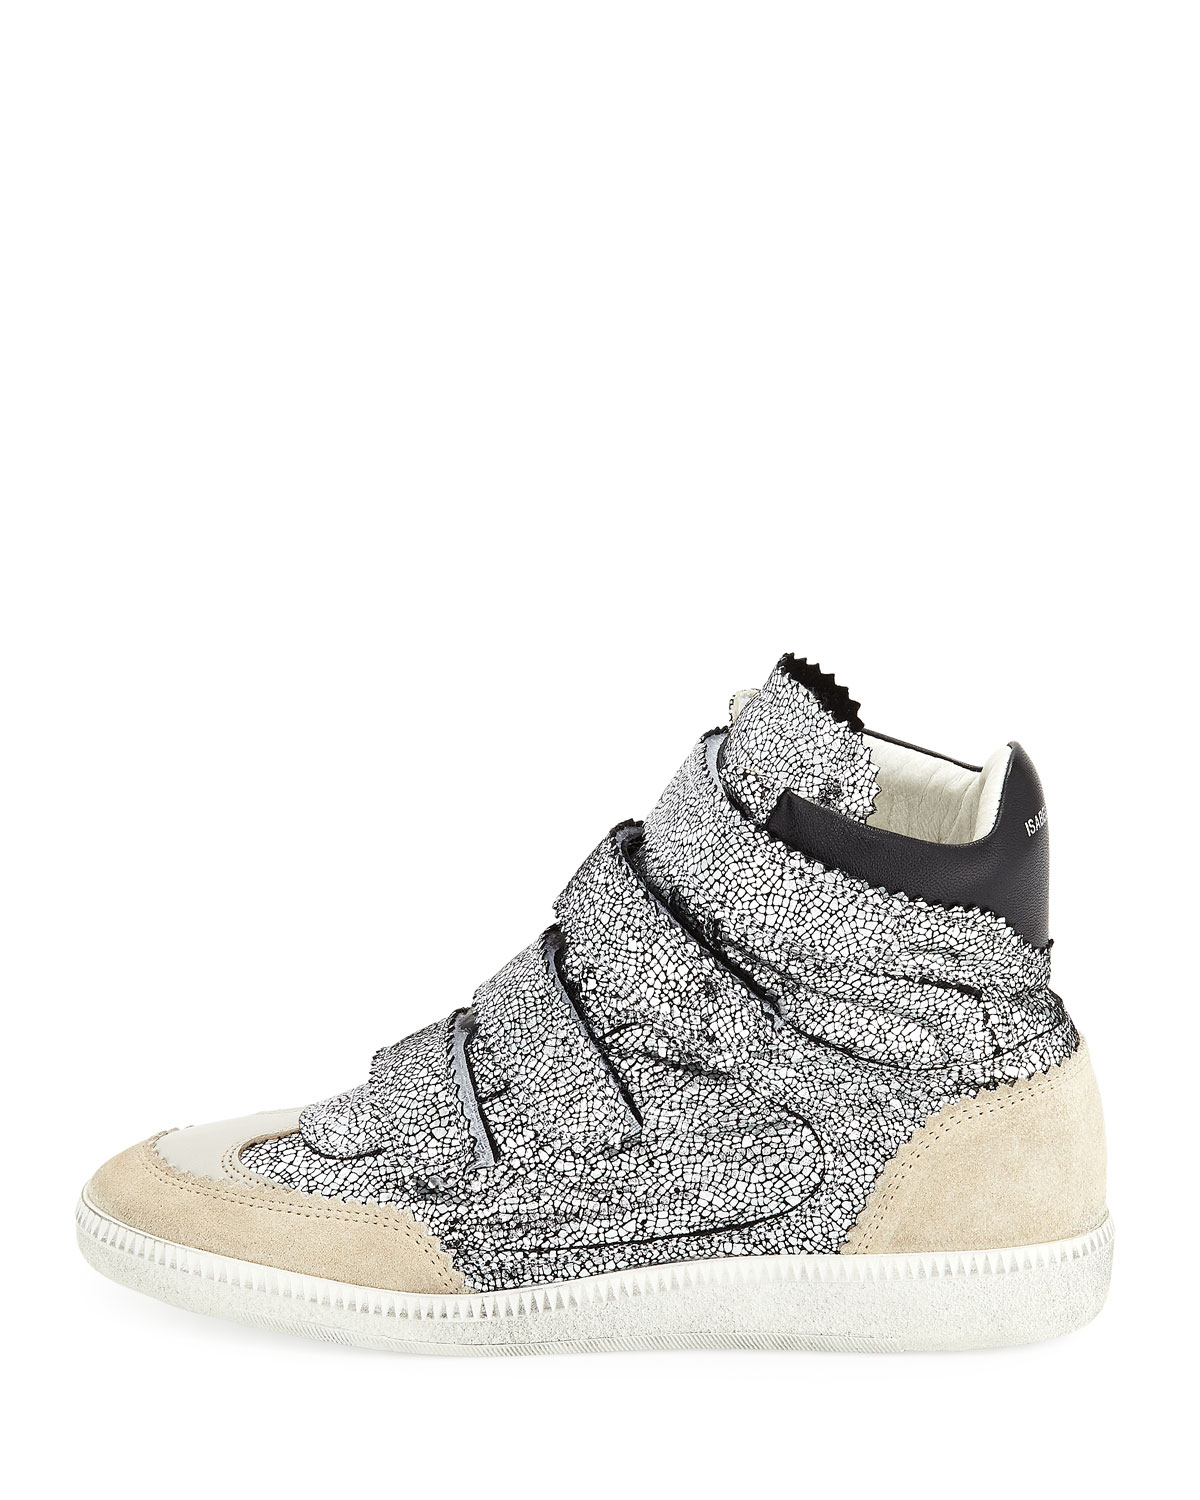 Isabel Marant Bilsy Crackled Multi-Strap Sneakers, Gunmetal